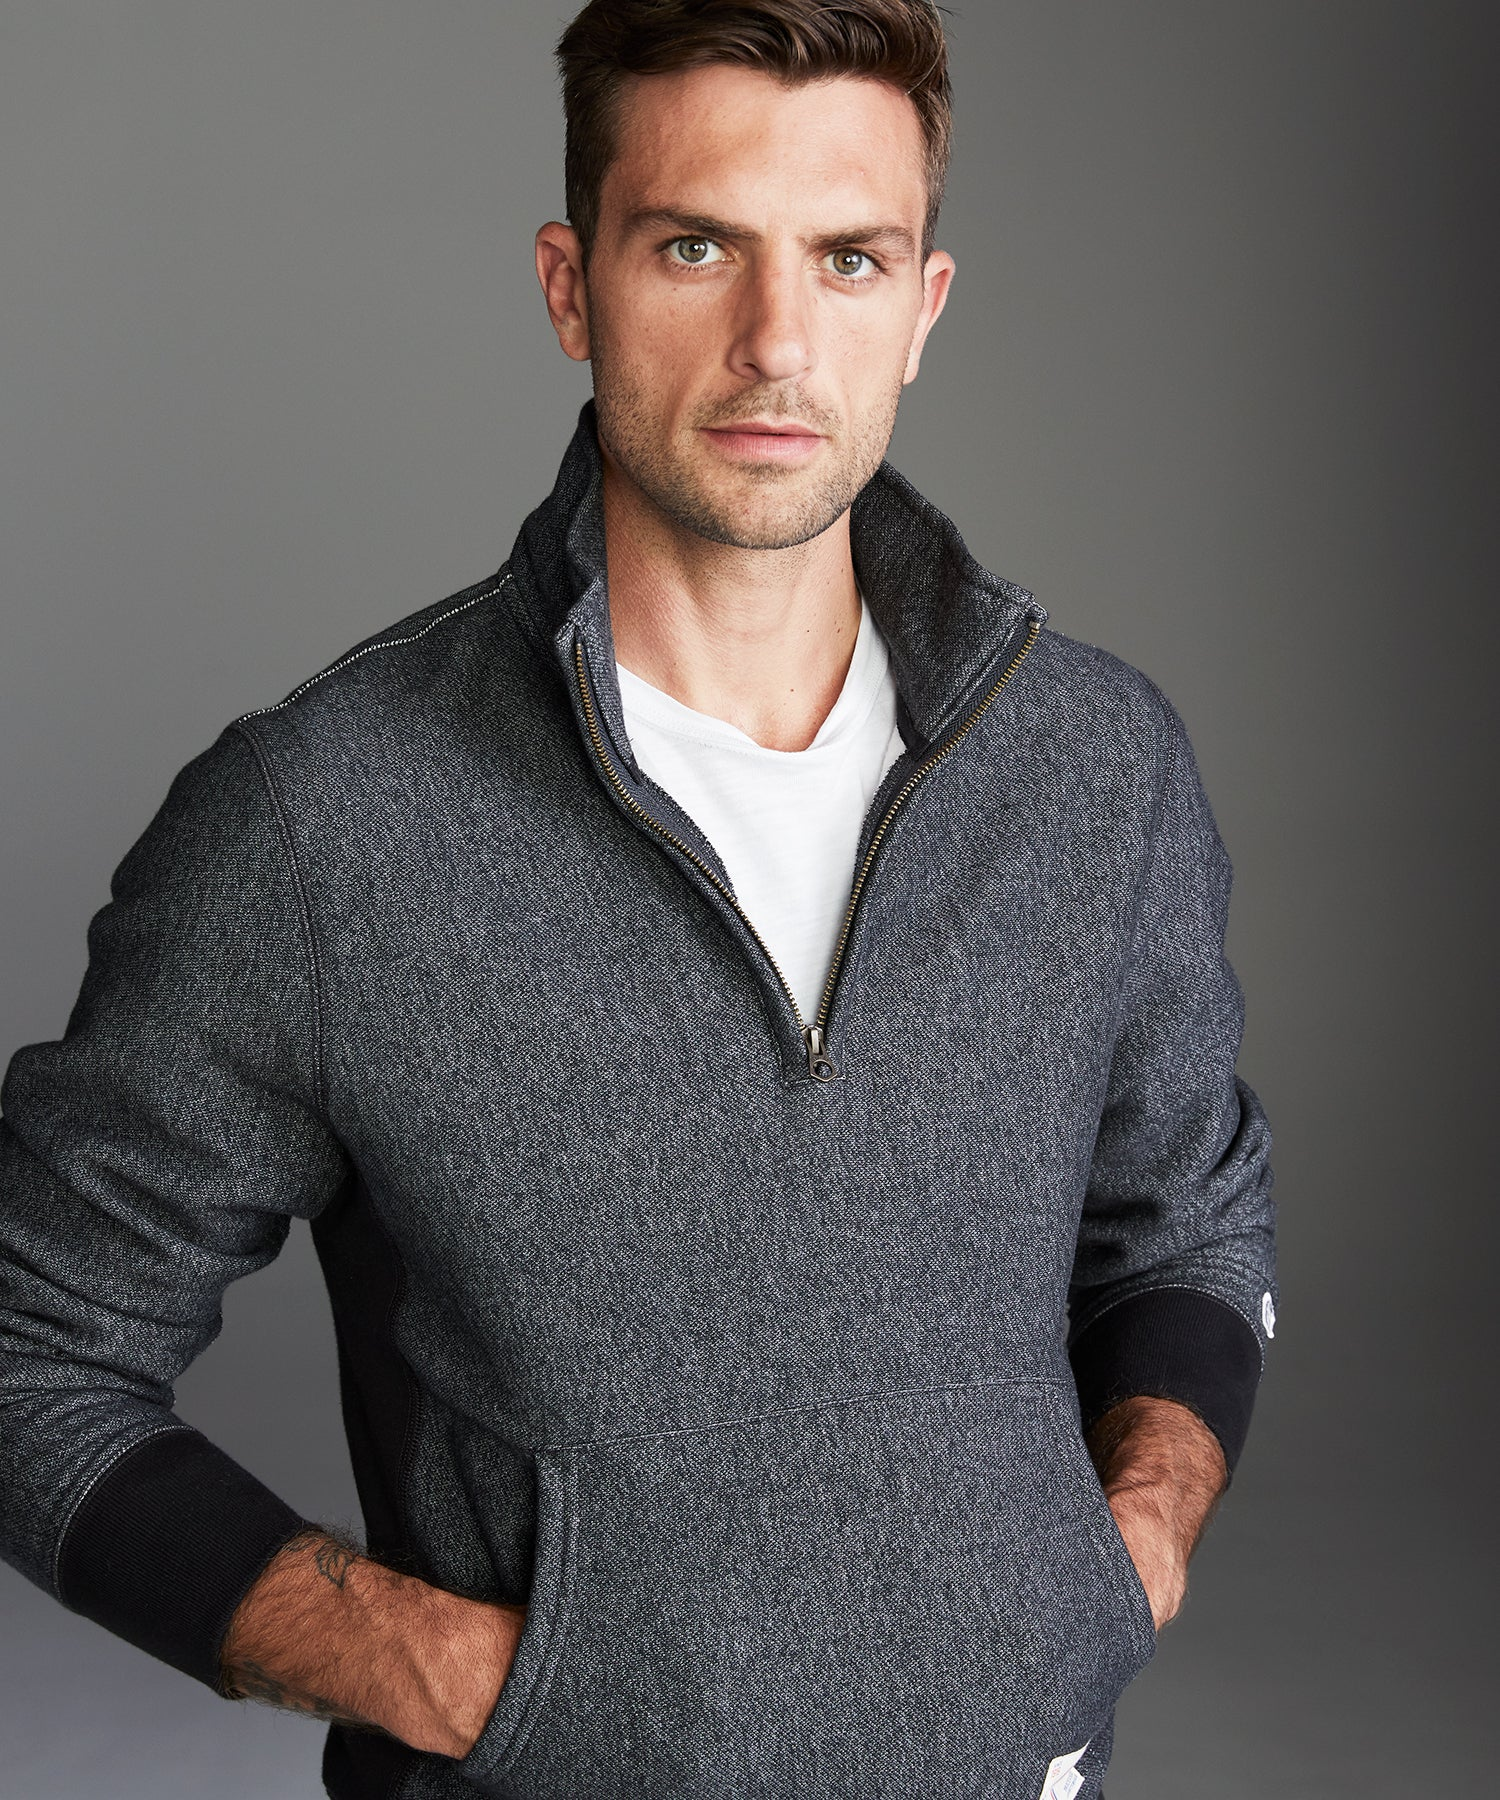 Fleece Quarter Zip Sweatshirt in Black Pepper Charcoal